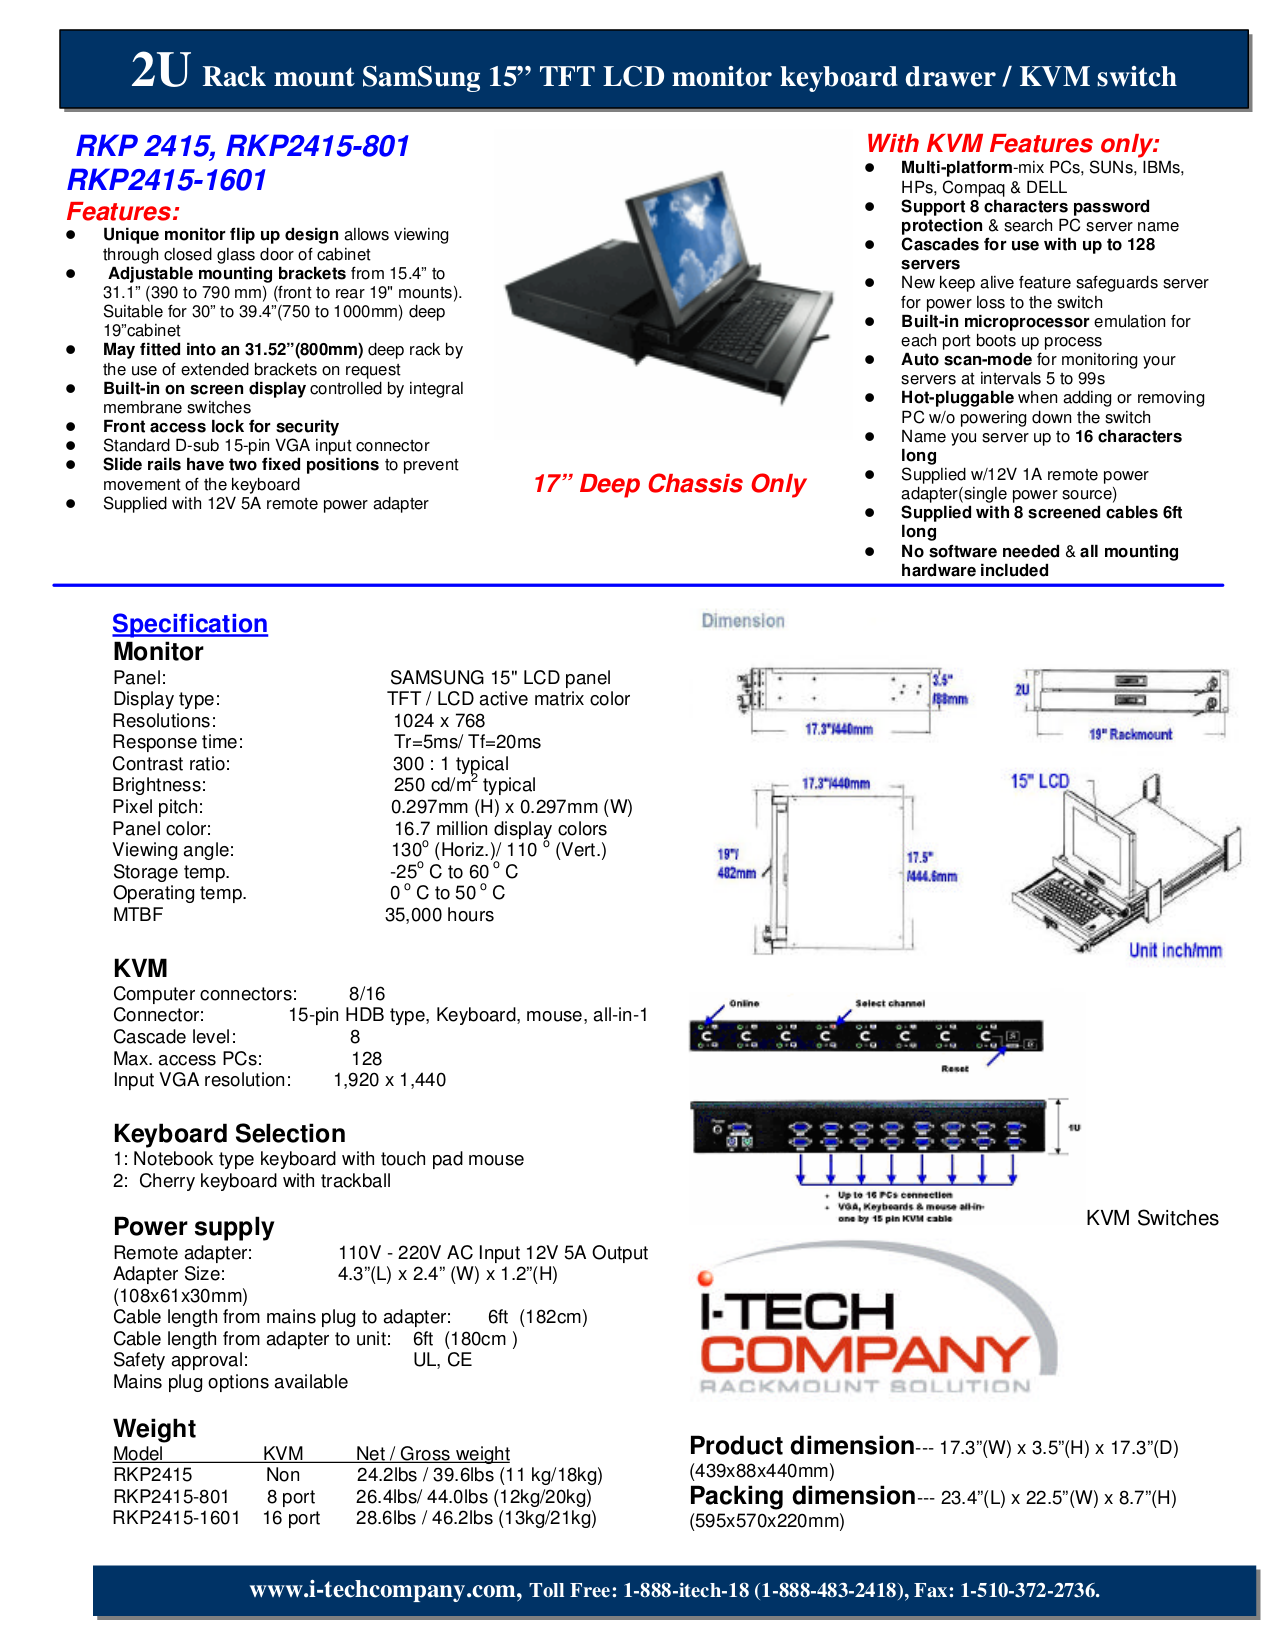 pdf for I-Tech Other RKP2415-1601 Keyboard Drawers manual